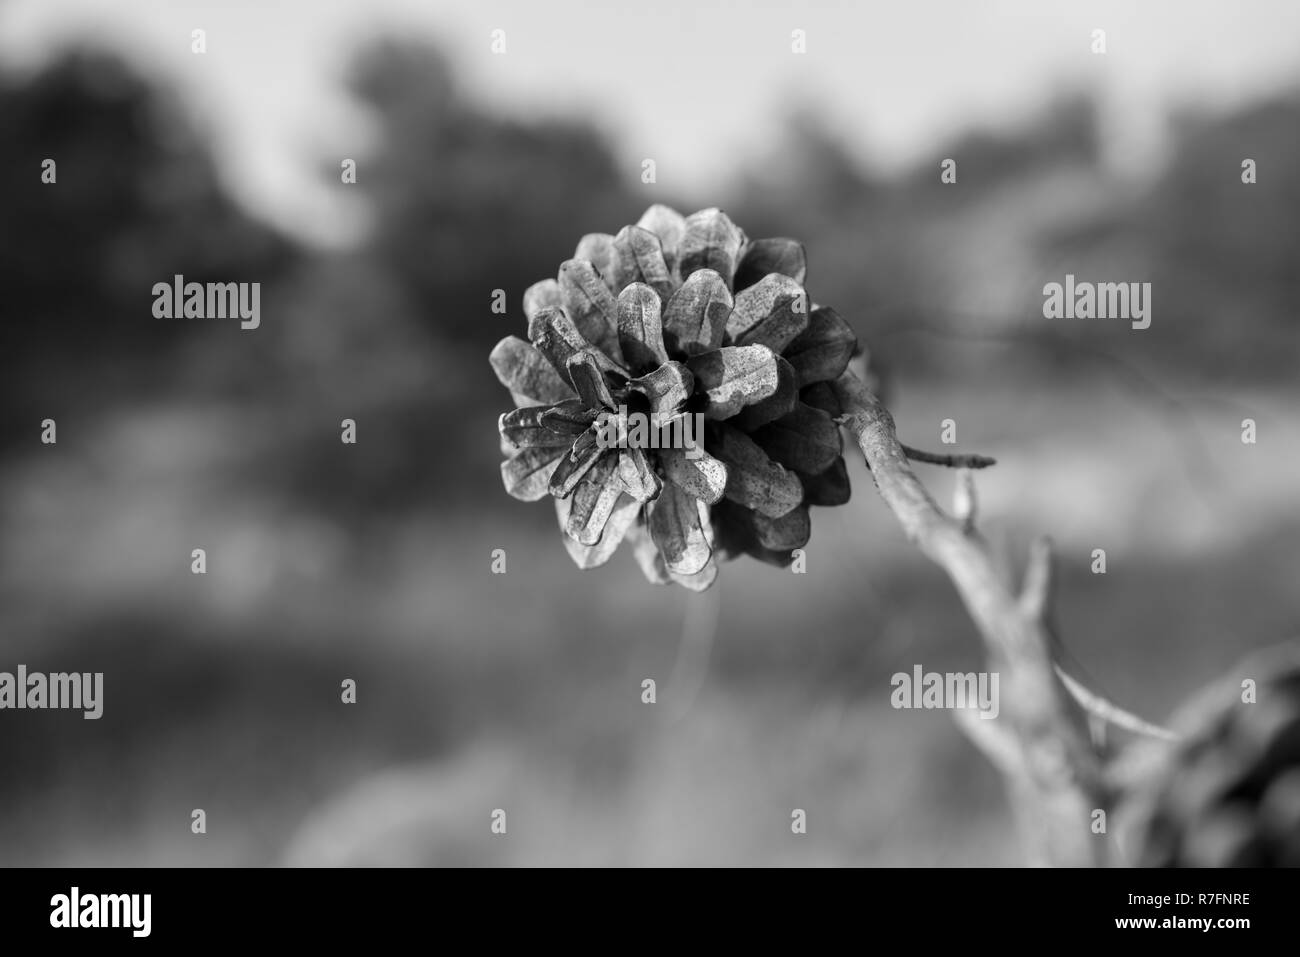 Small pine cone on a dry branch. Blurred background. Pine seed. Black and white image - Stock Image